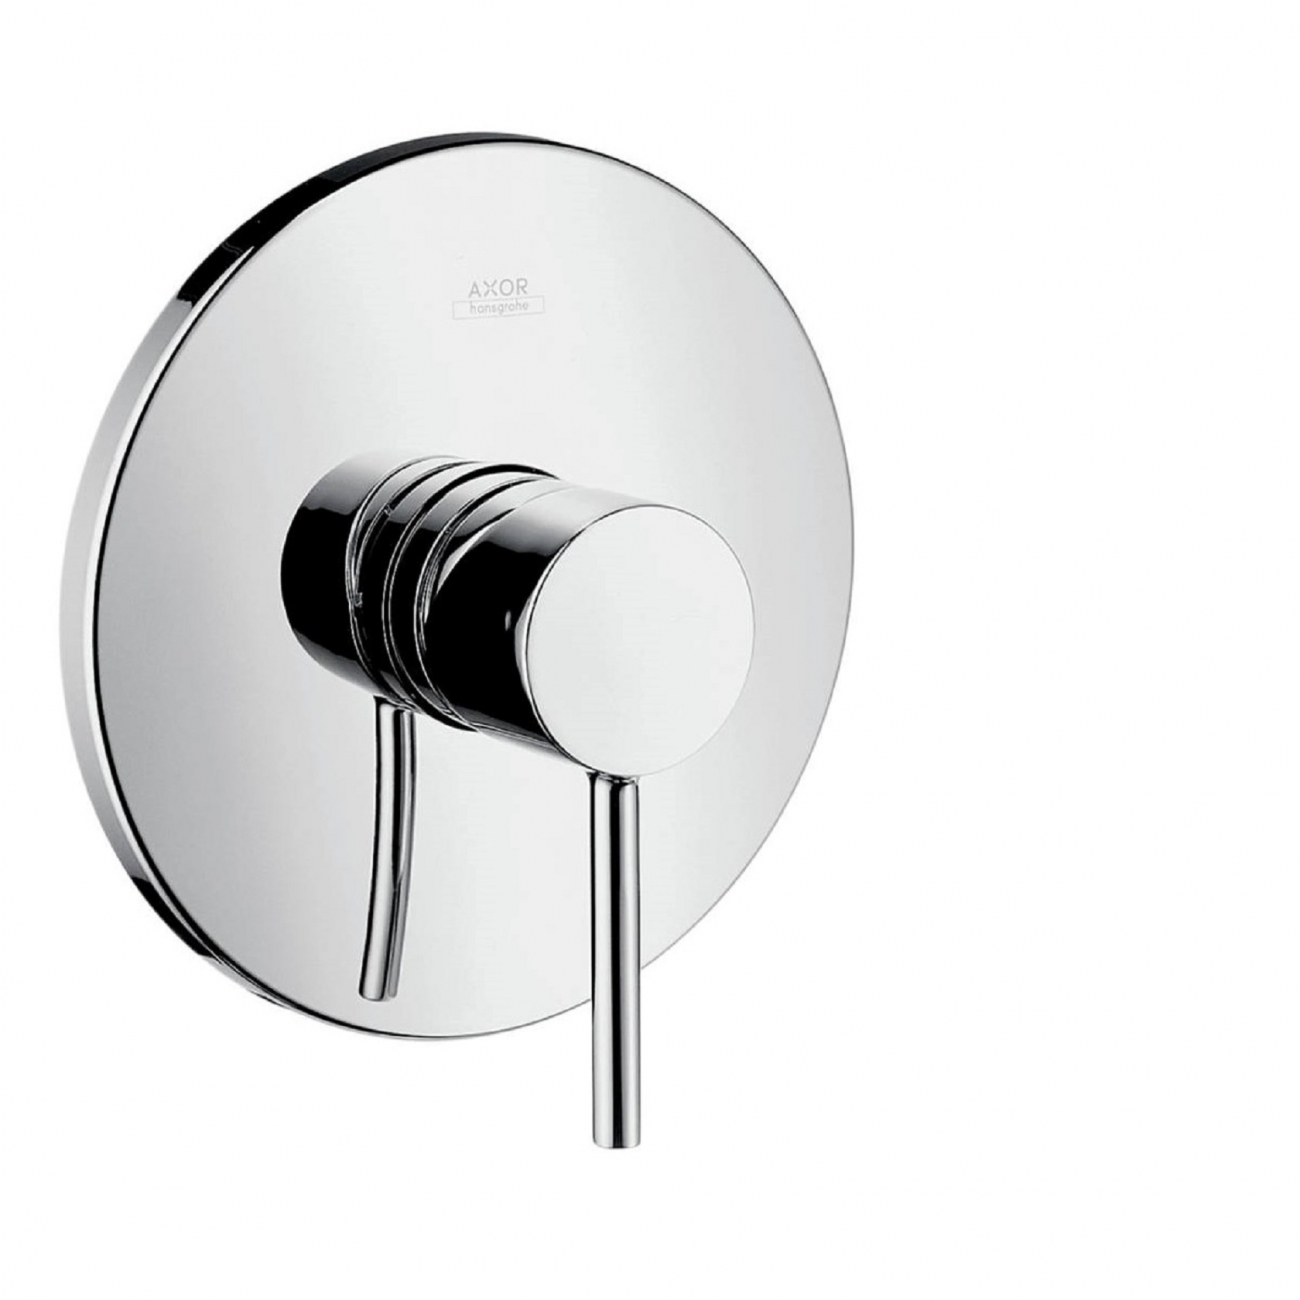 AXOR HANSGROHE STARCK SINGLE LEVER SHOWER MIXER - TattaHome